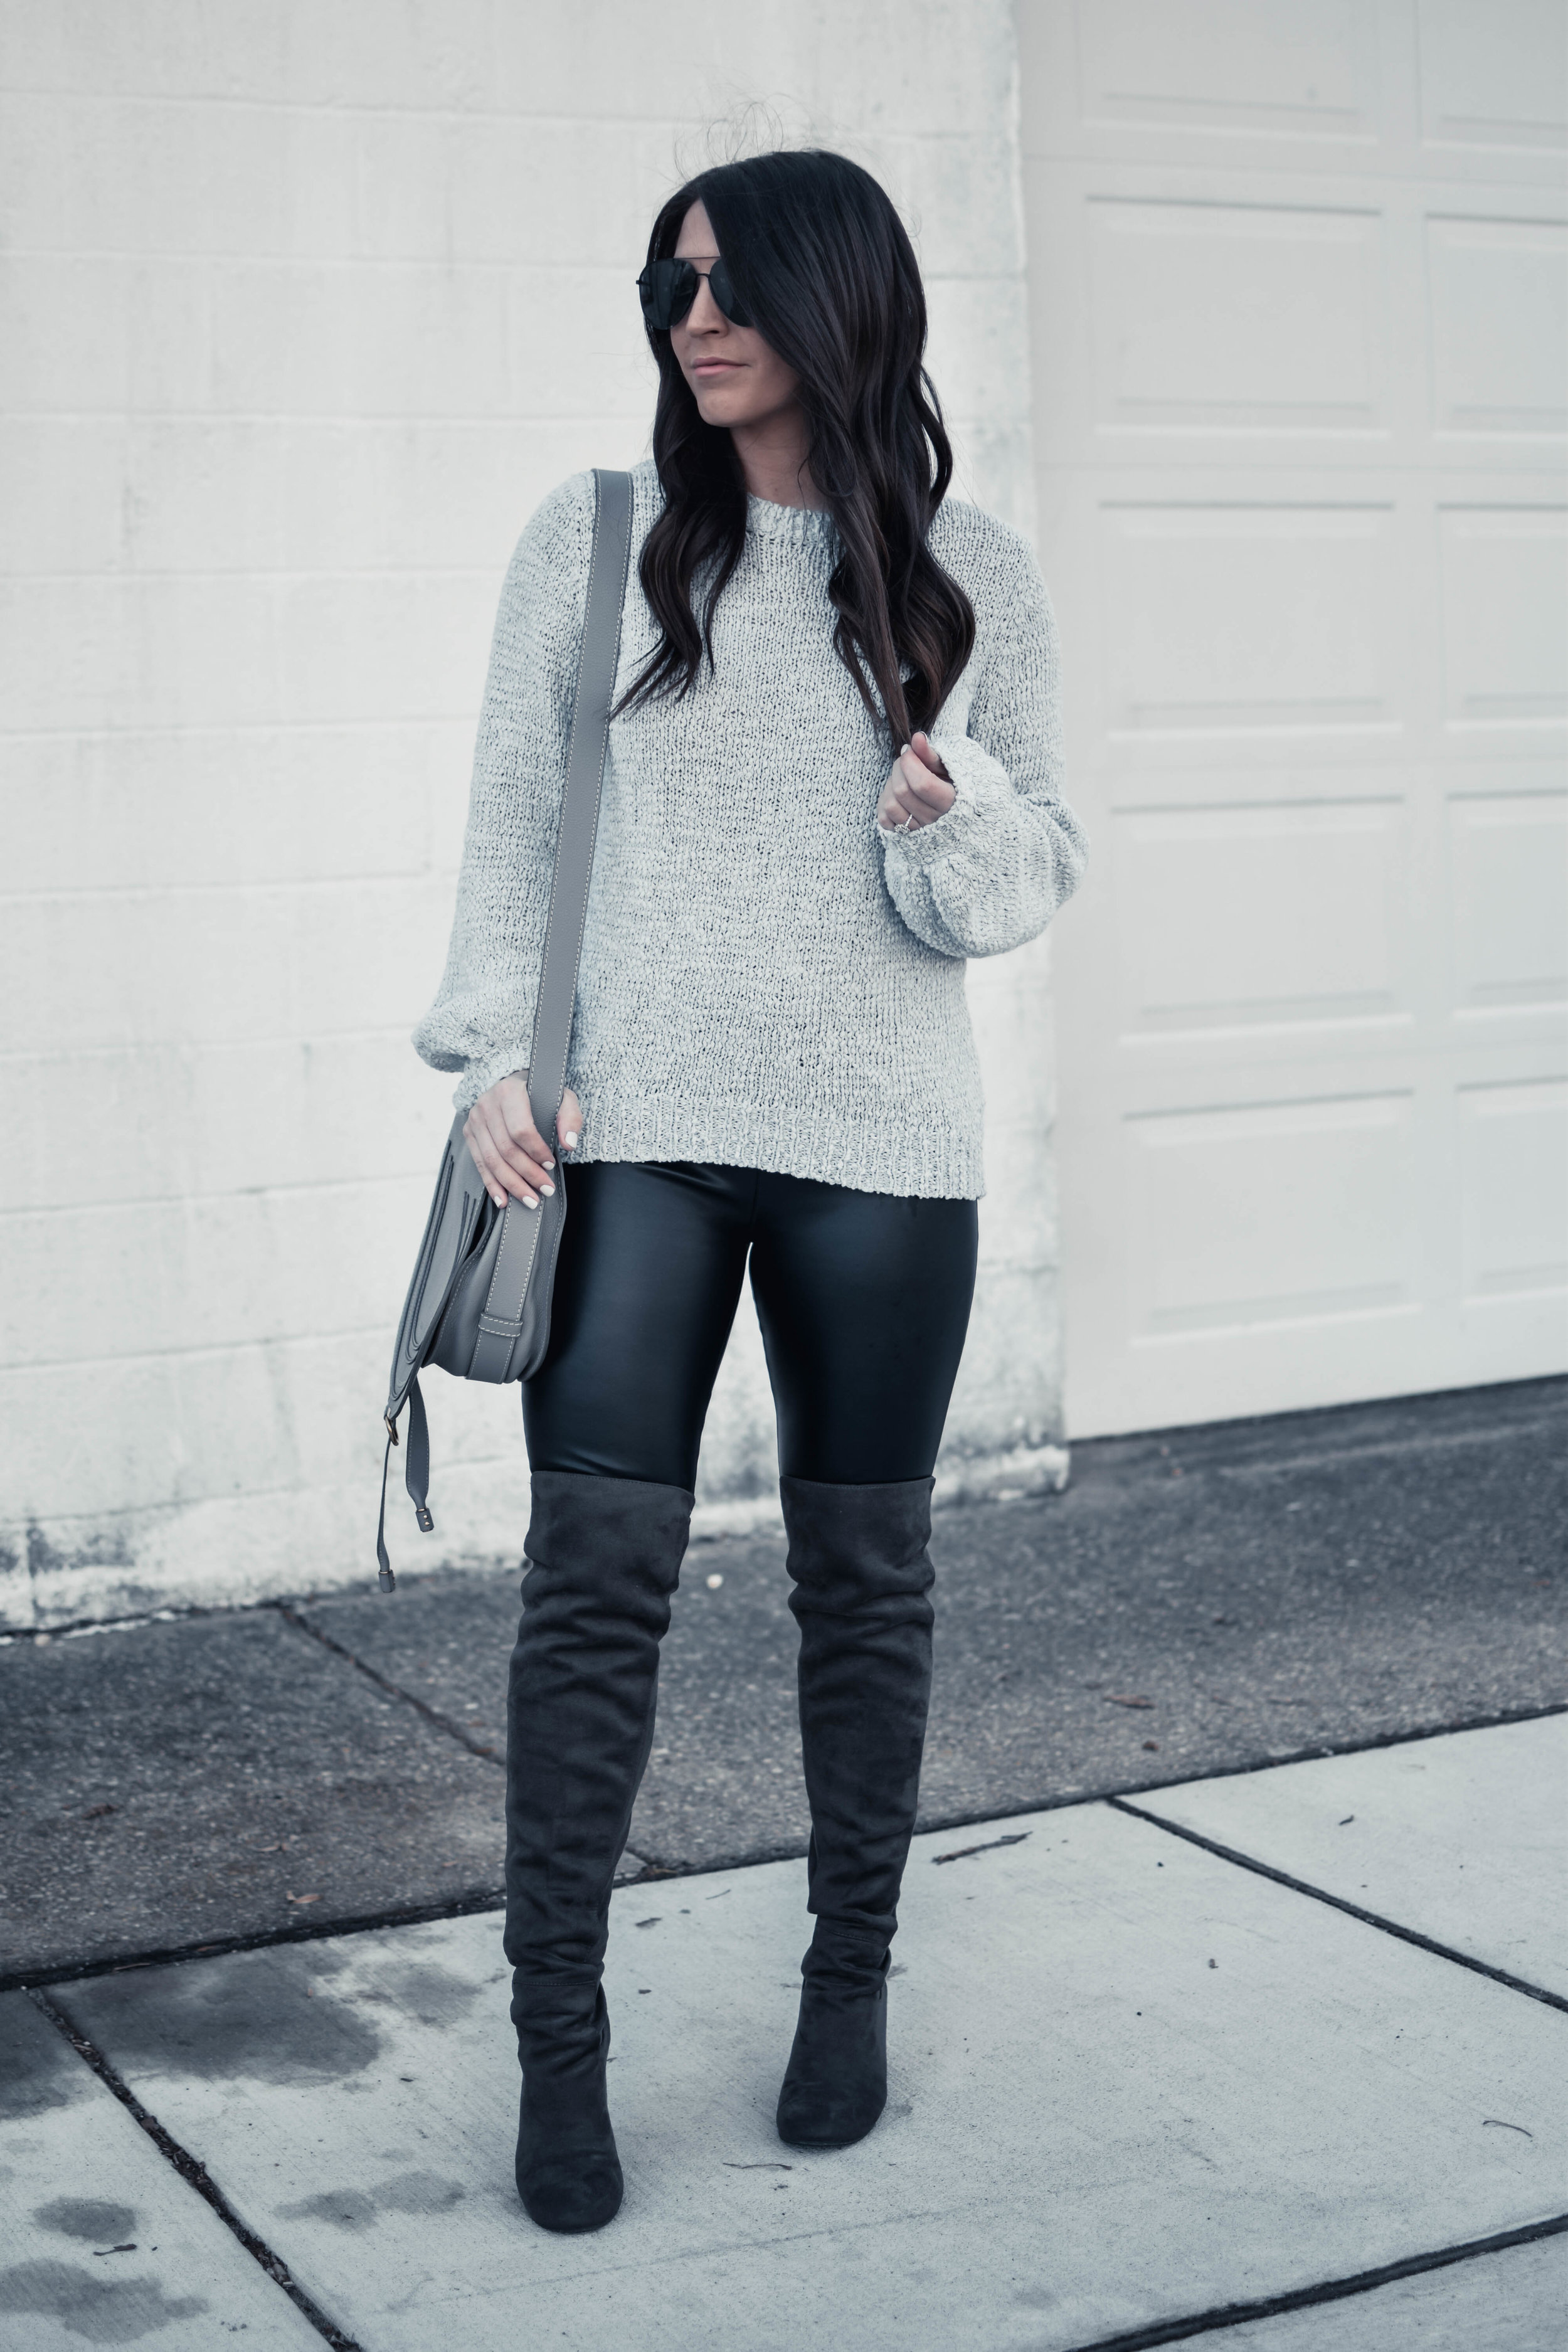 Balloon Sleeve Sweater + Faux Leather Leggings | Pine Barren Beauty | light weight sweater, spring transition outfit idea, over the knee boots, winter outfit idea, cozy outfit idea